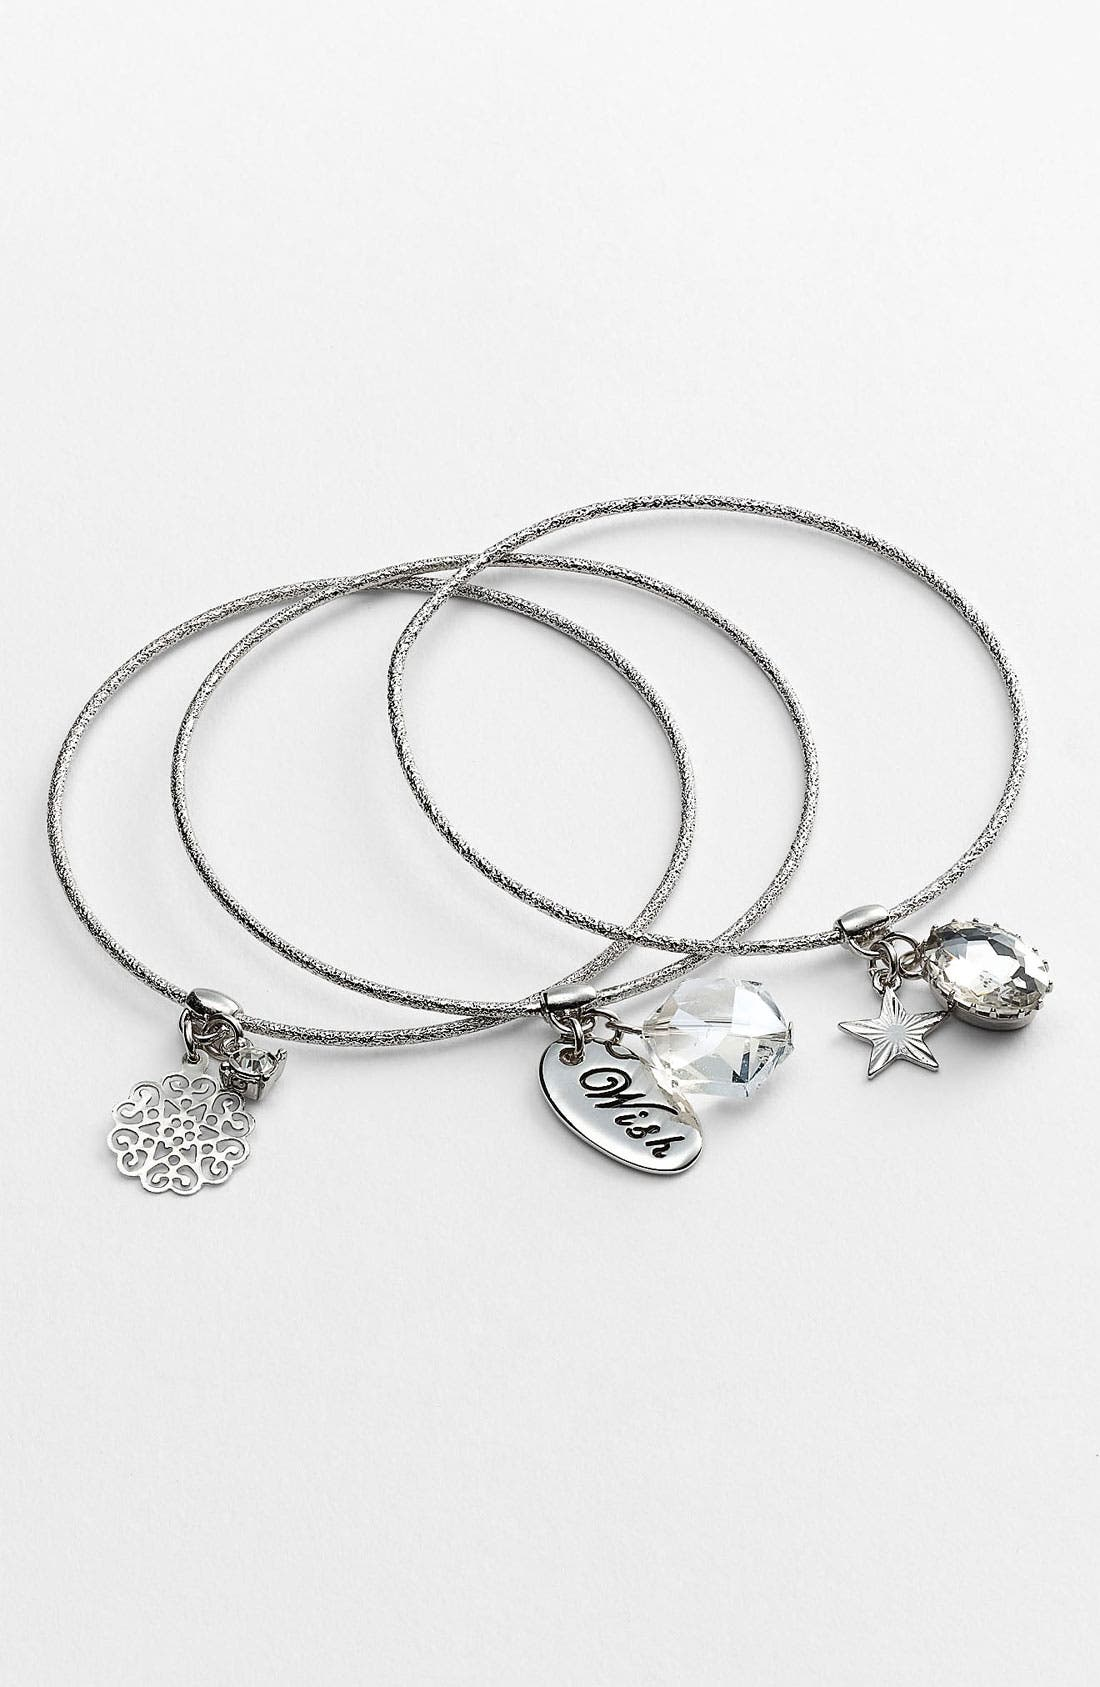 Main Image - Nordstrom 'Treasures' Charm Bangles (Set of 3)